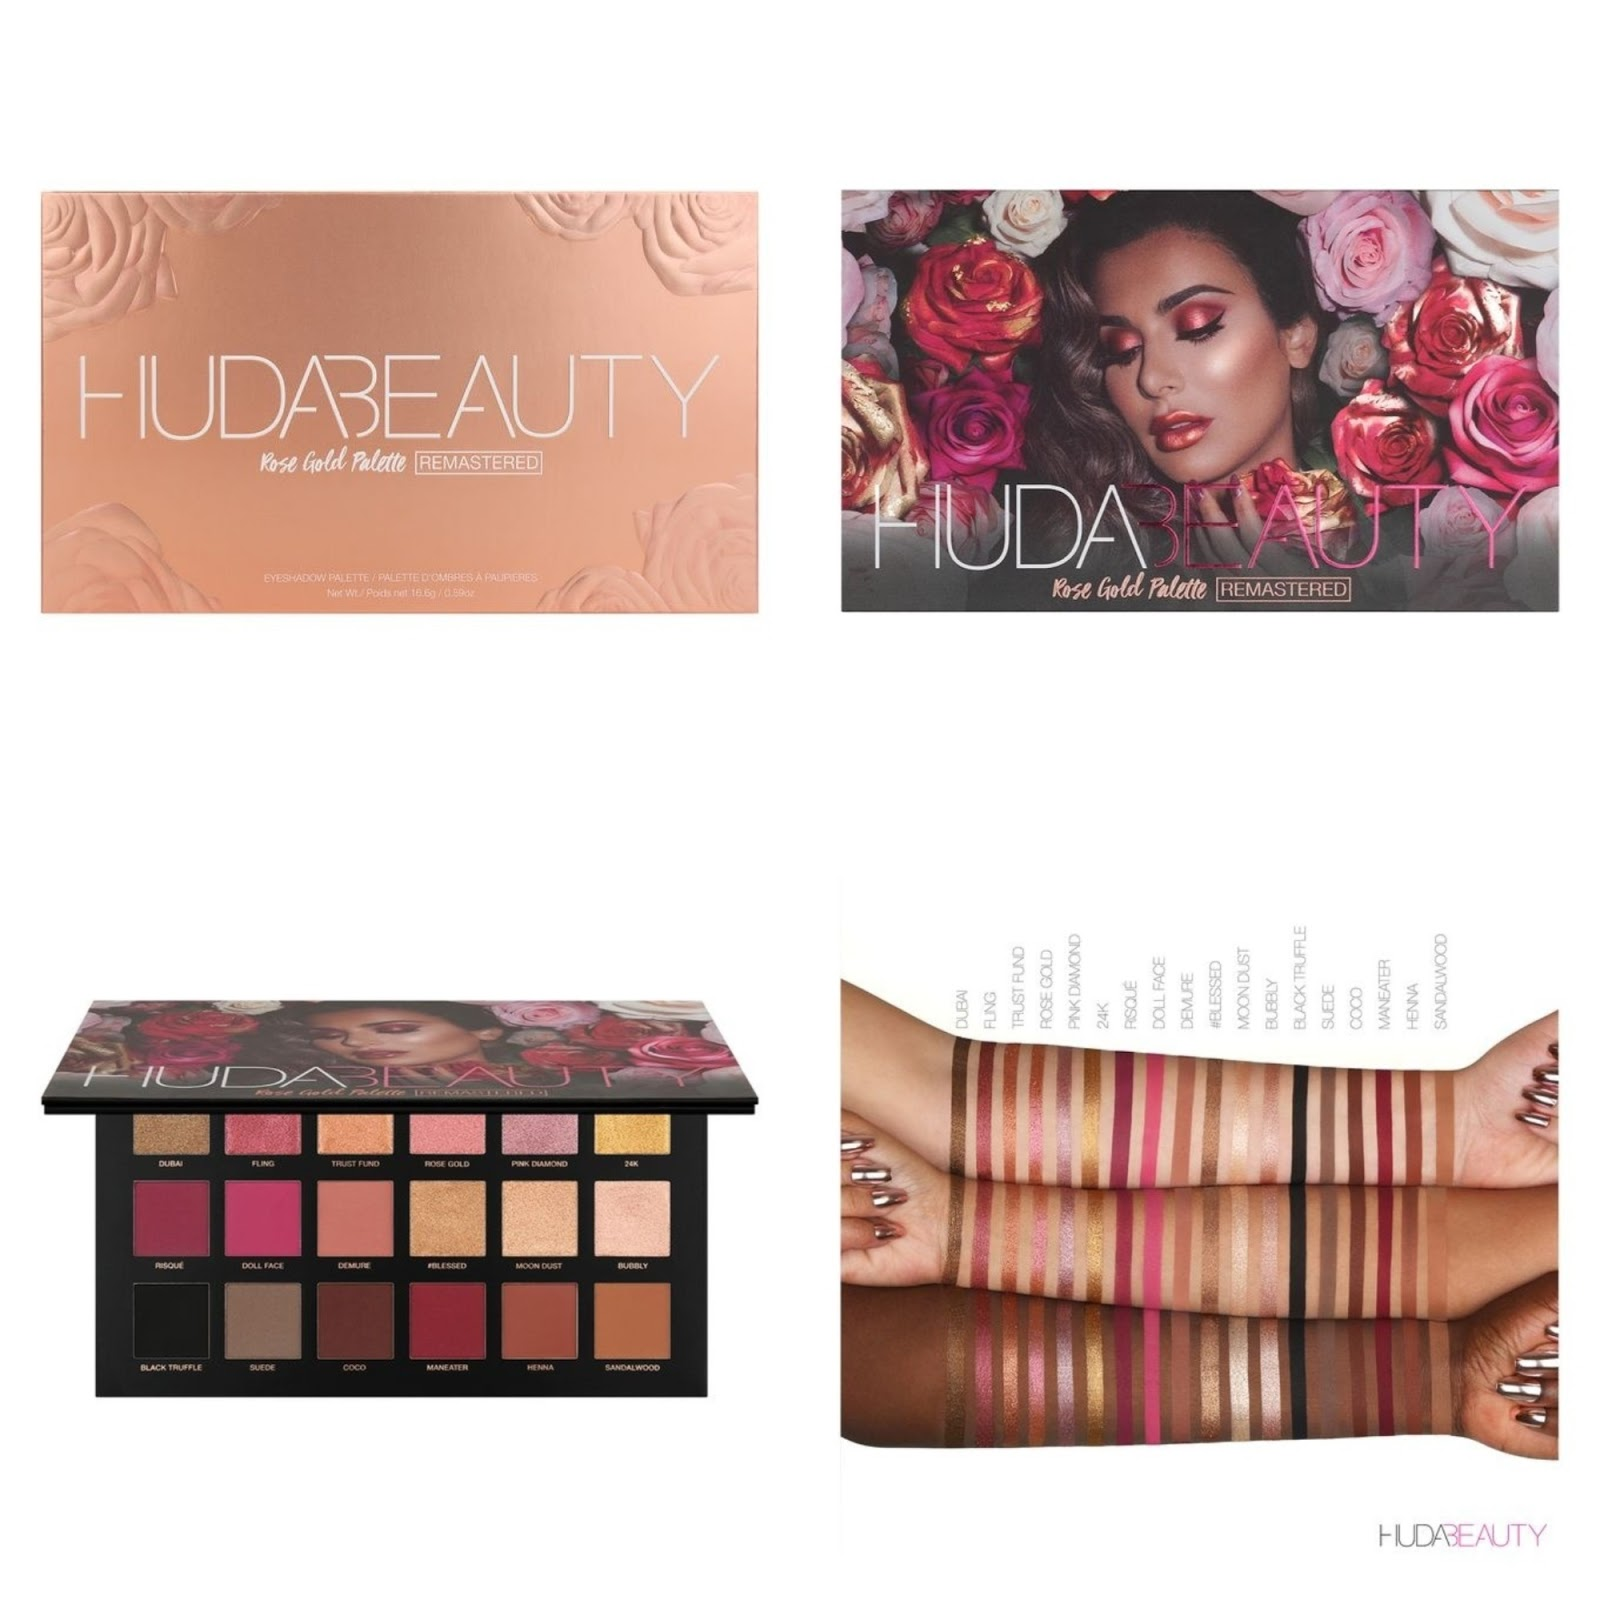 First Look Huda Beauty Rose Gold Remastered Eyeshadow Palette